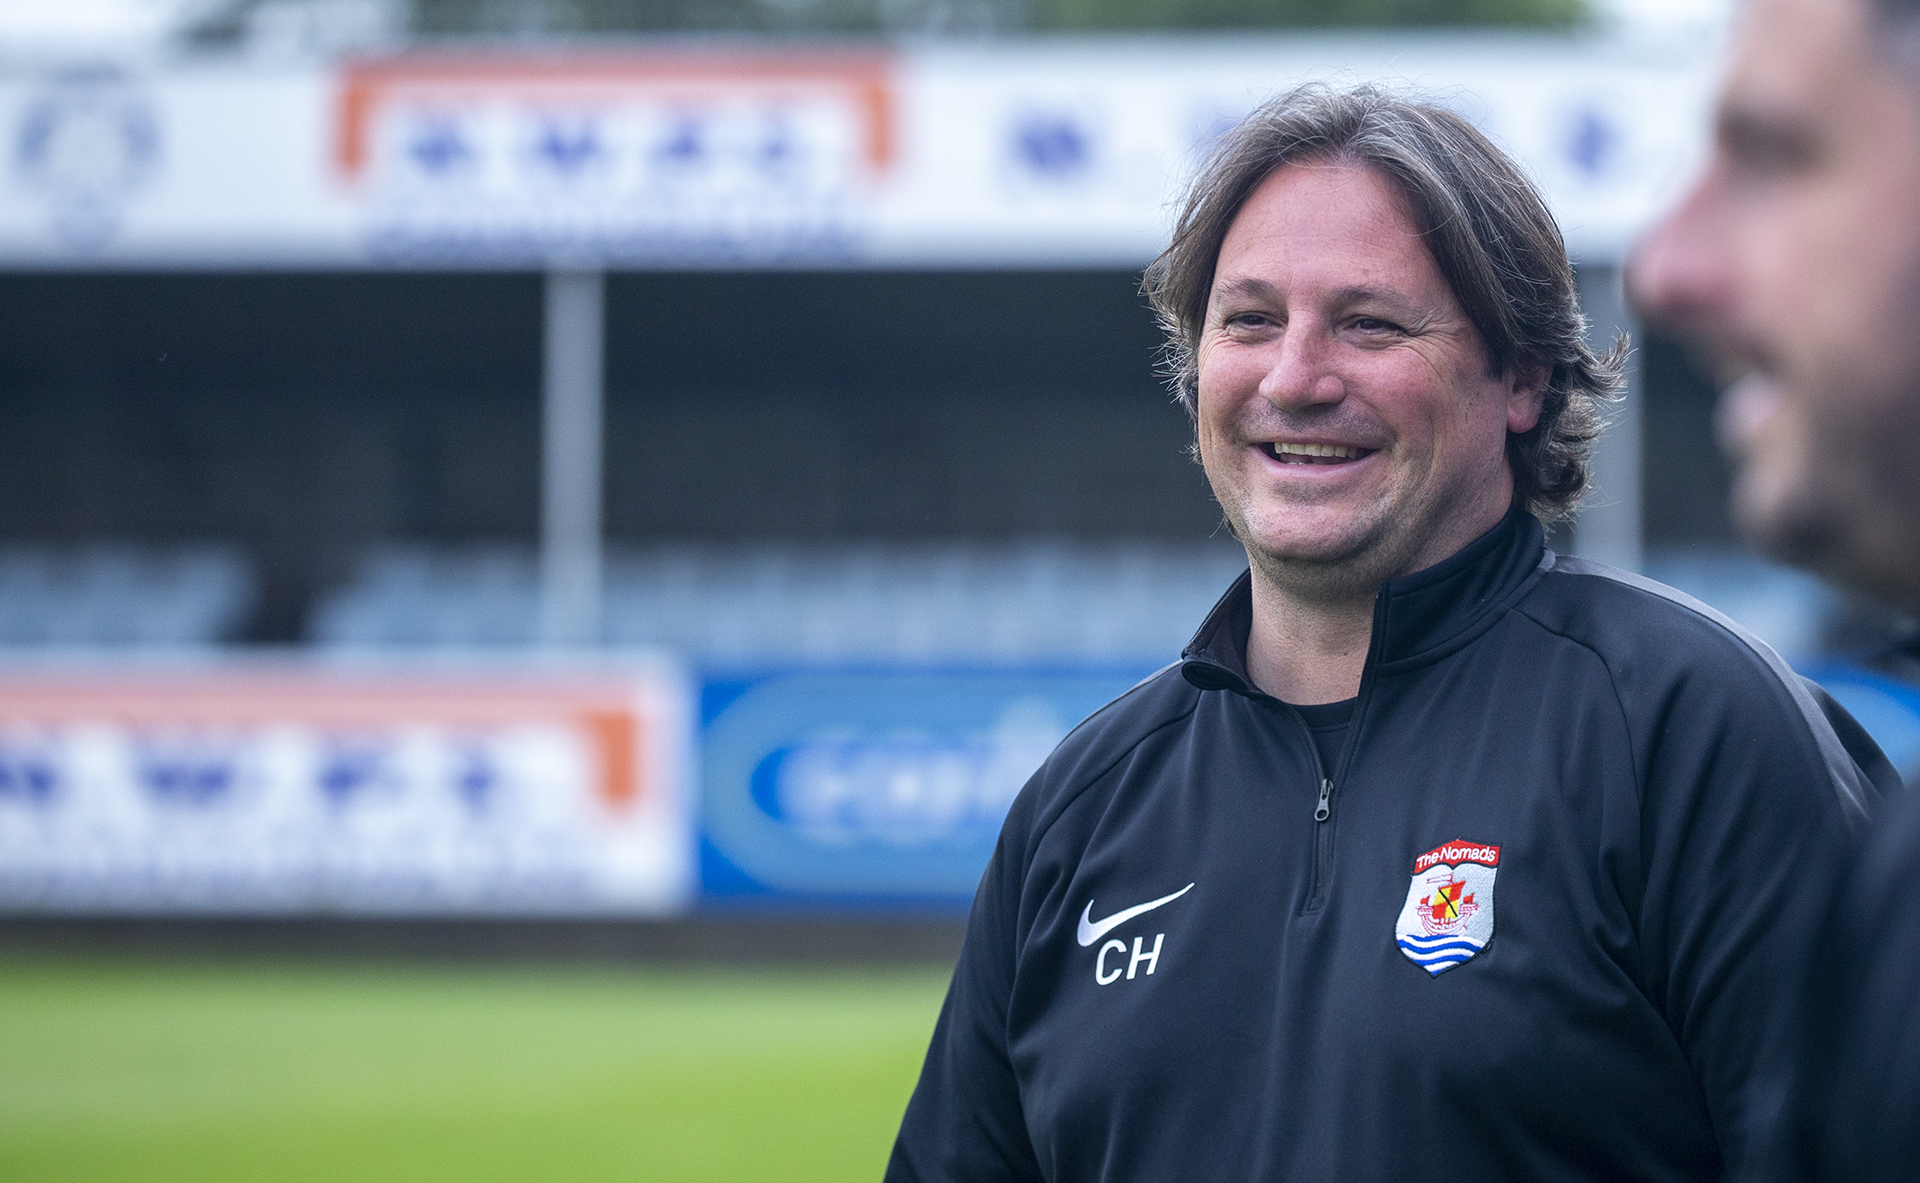 Craig Harrison has extended his stay at Connah's Quay Nomads | © NCM Media